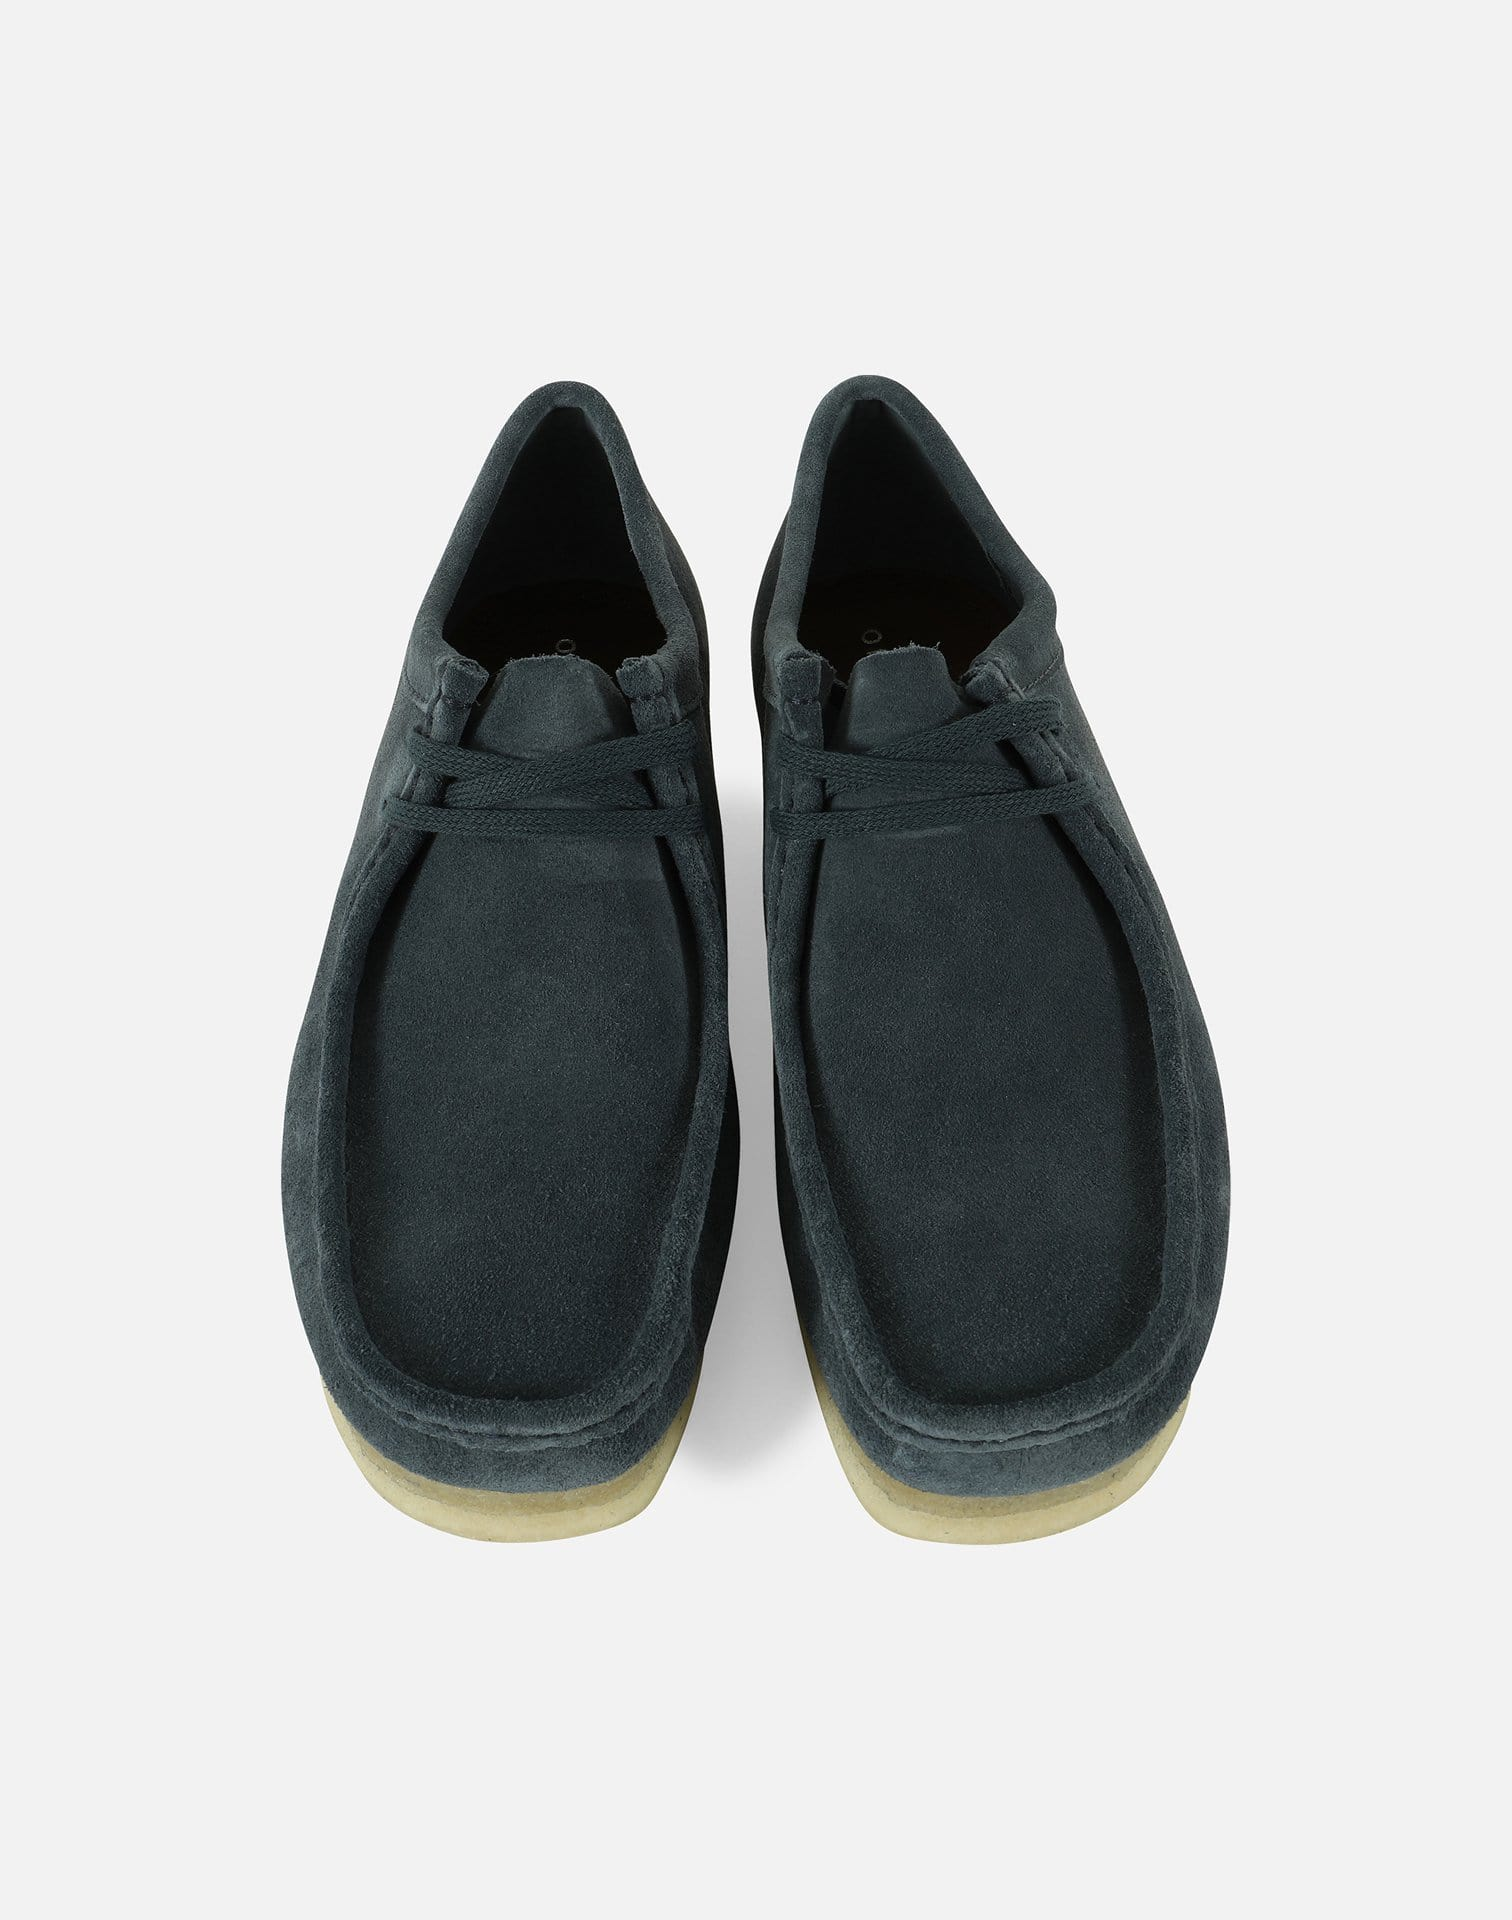 Clarks Men's Wallabee Low